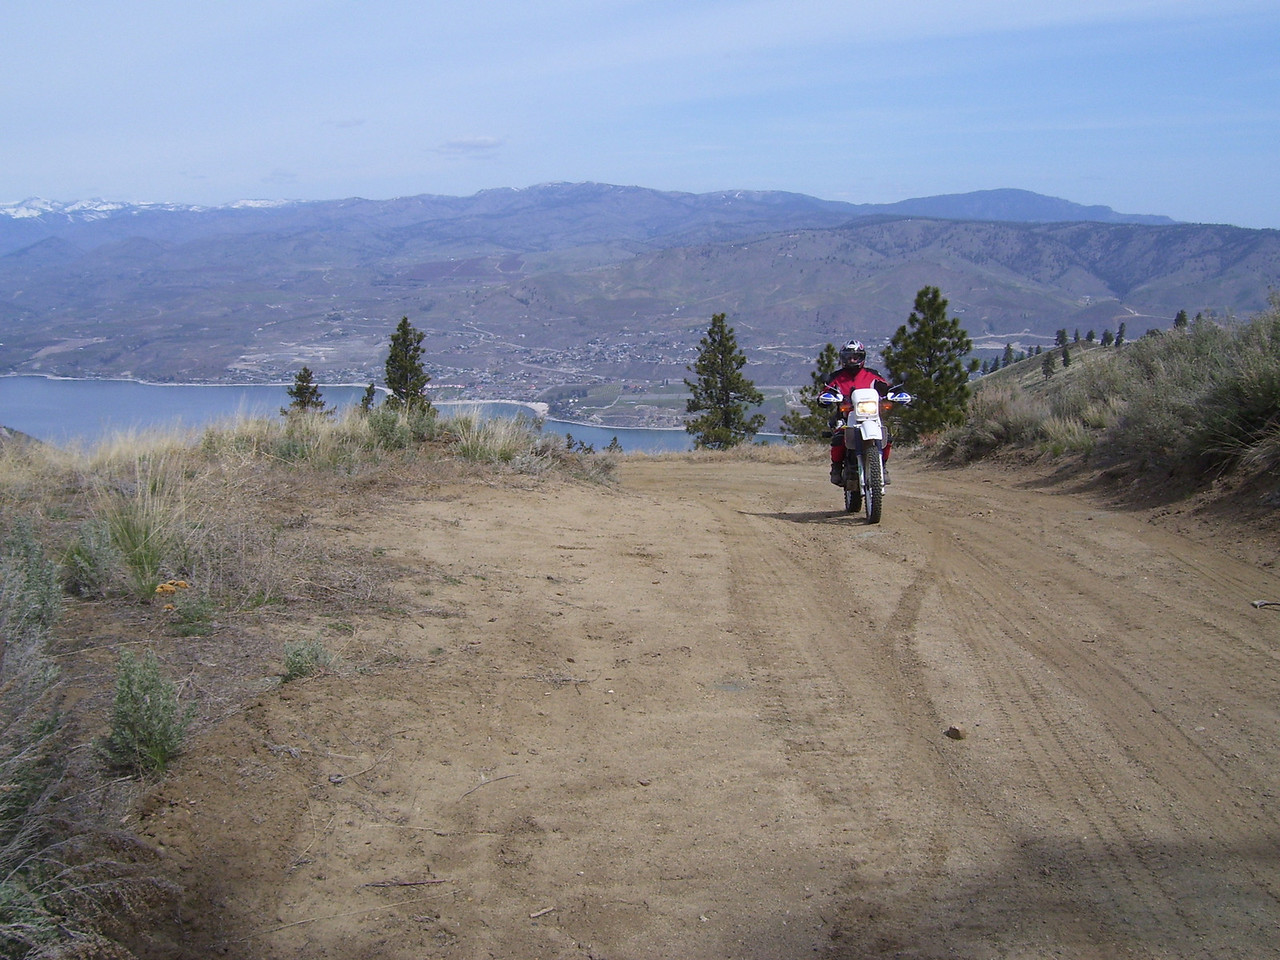 Running up to the top of Chelan Butte